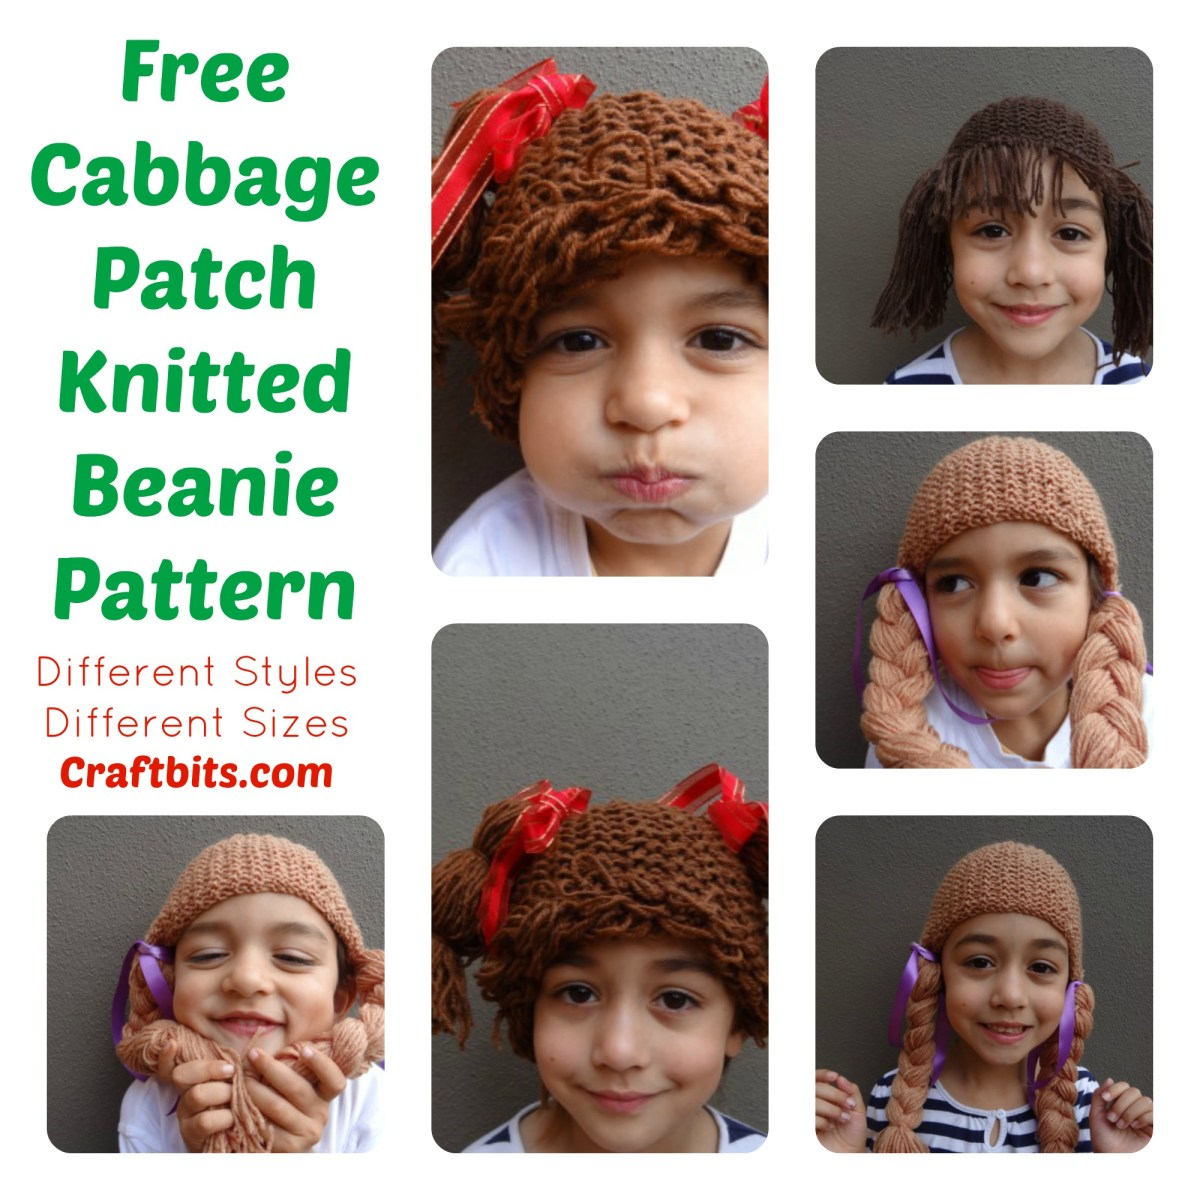 Free Knitted Cabbage Patch Doll Clothes Patterns